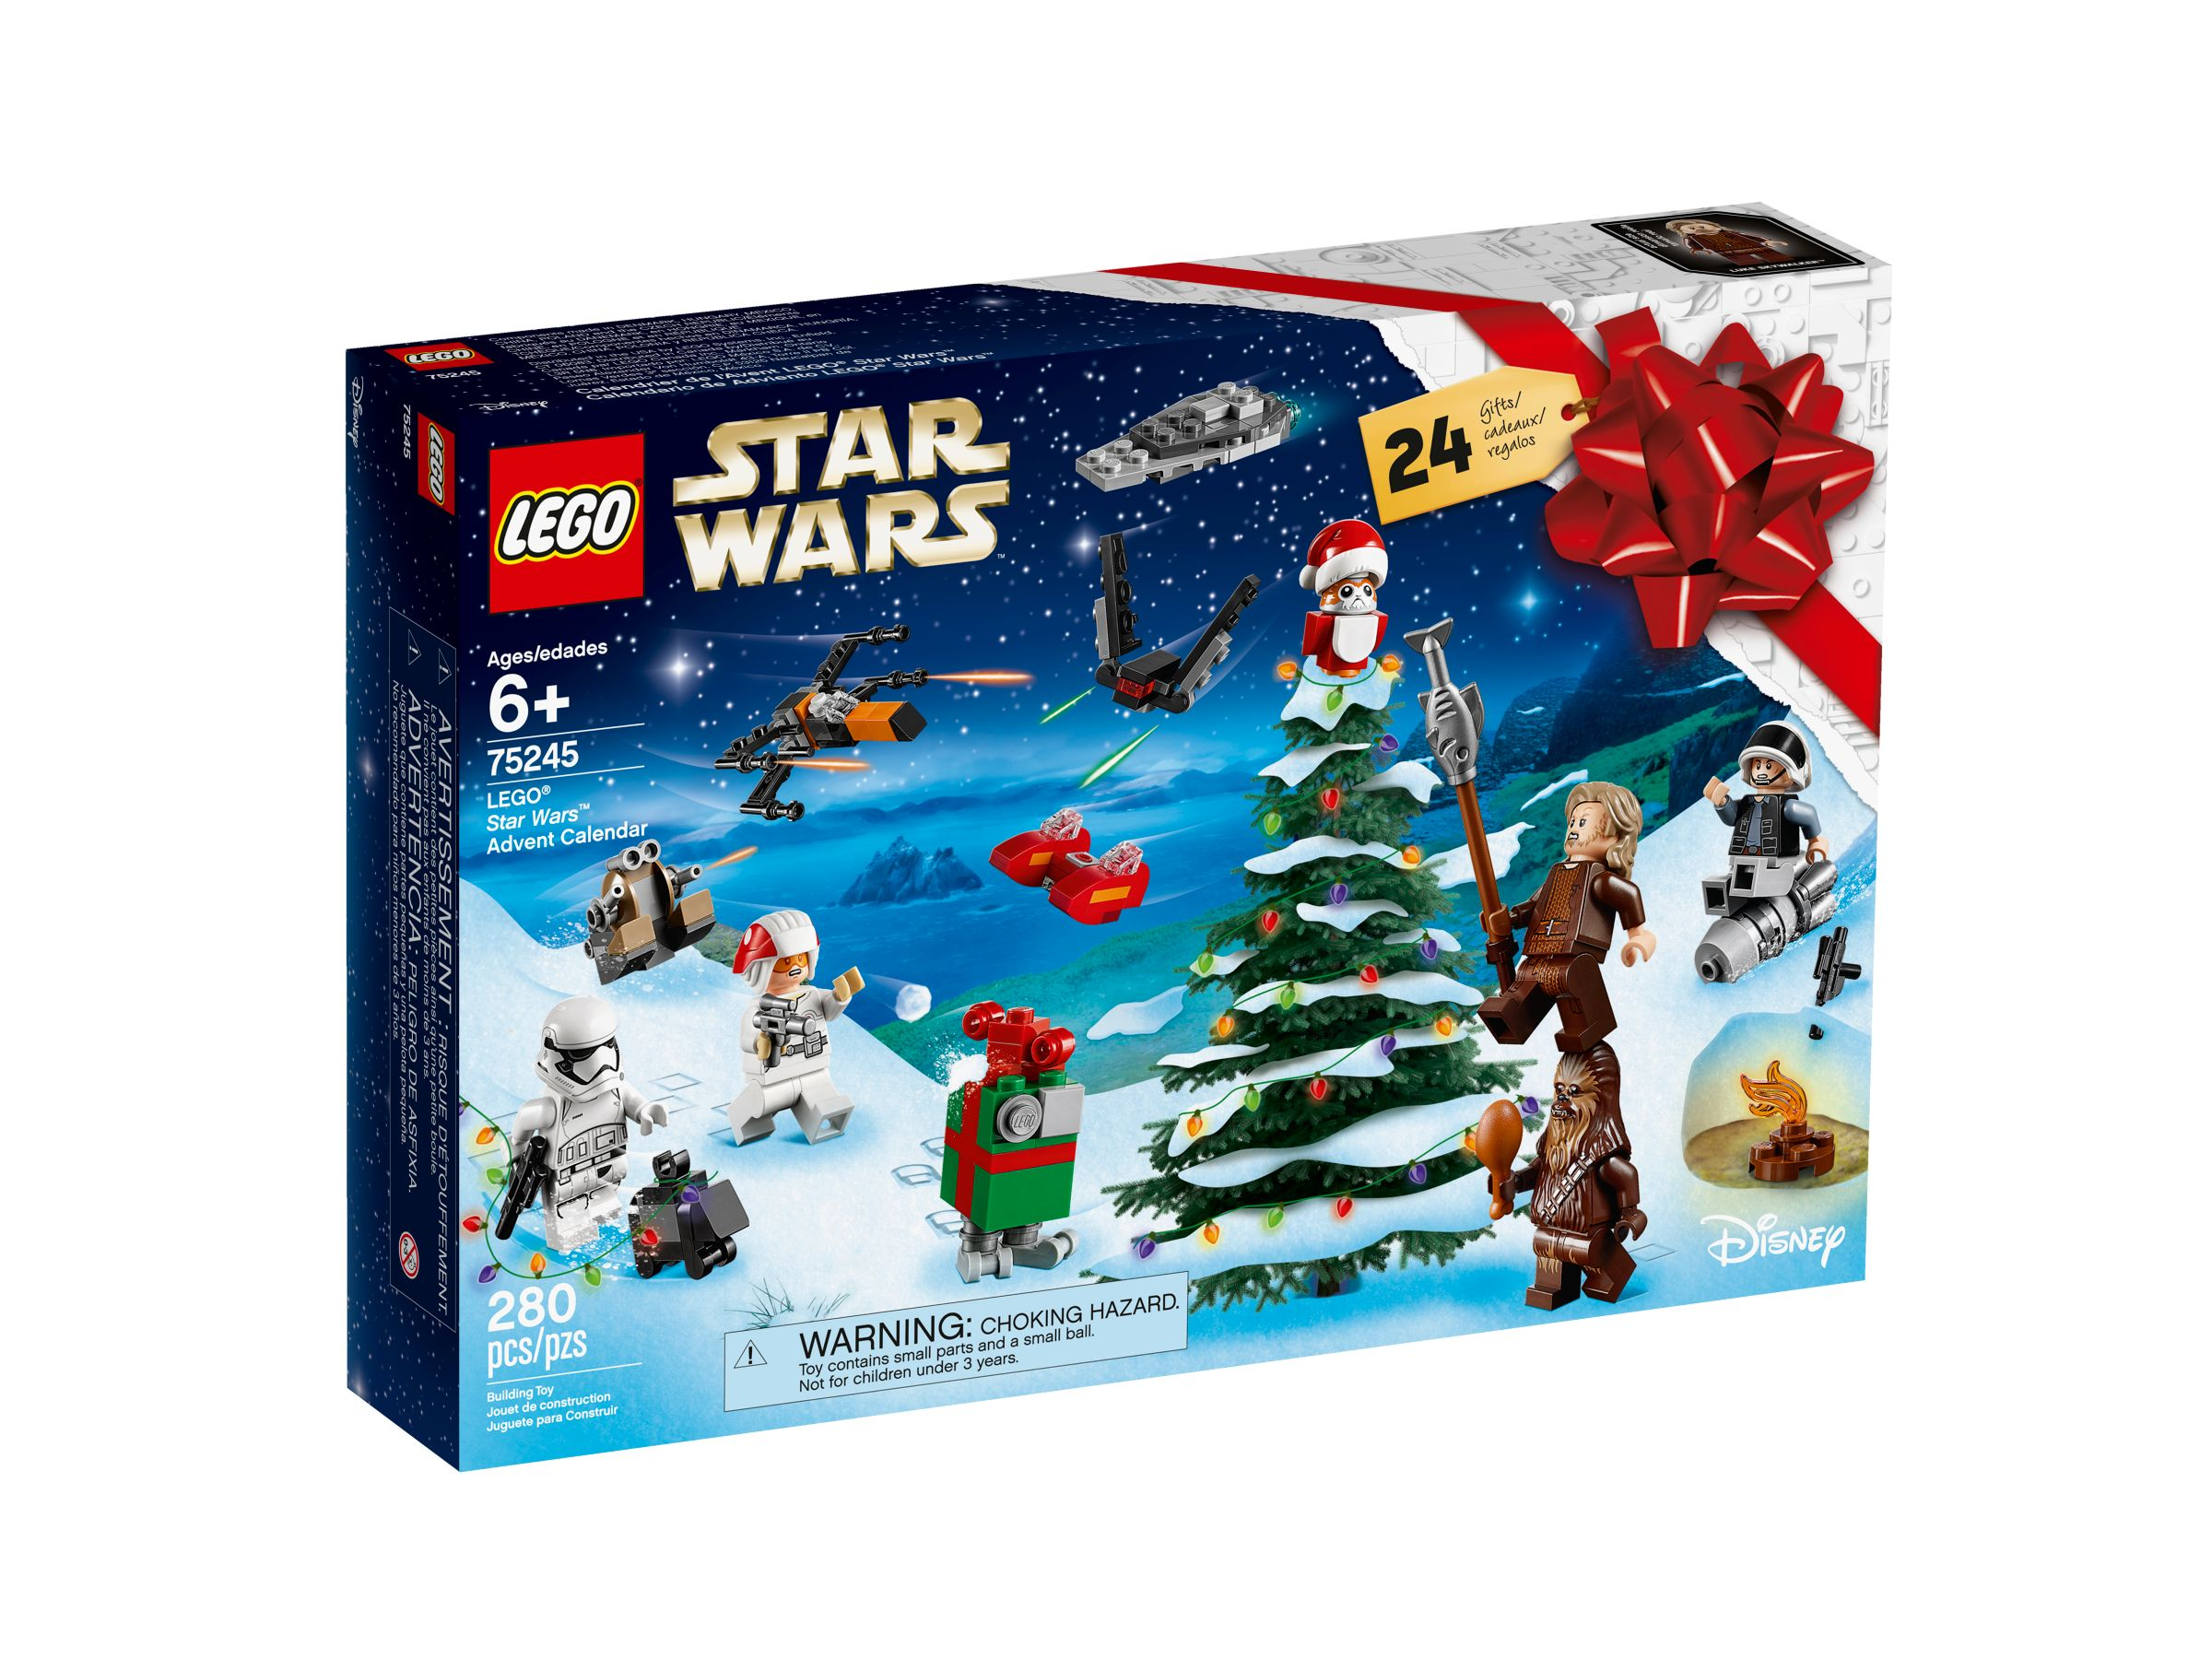 LEGO Star Wars 75245 Star Wars Adventskalender 2019